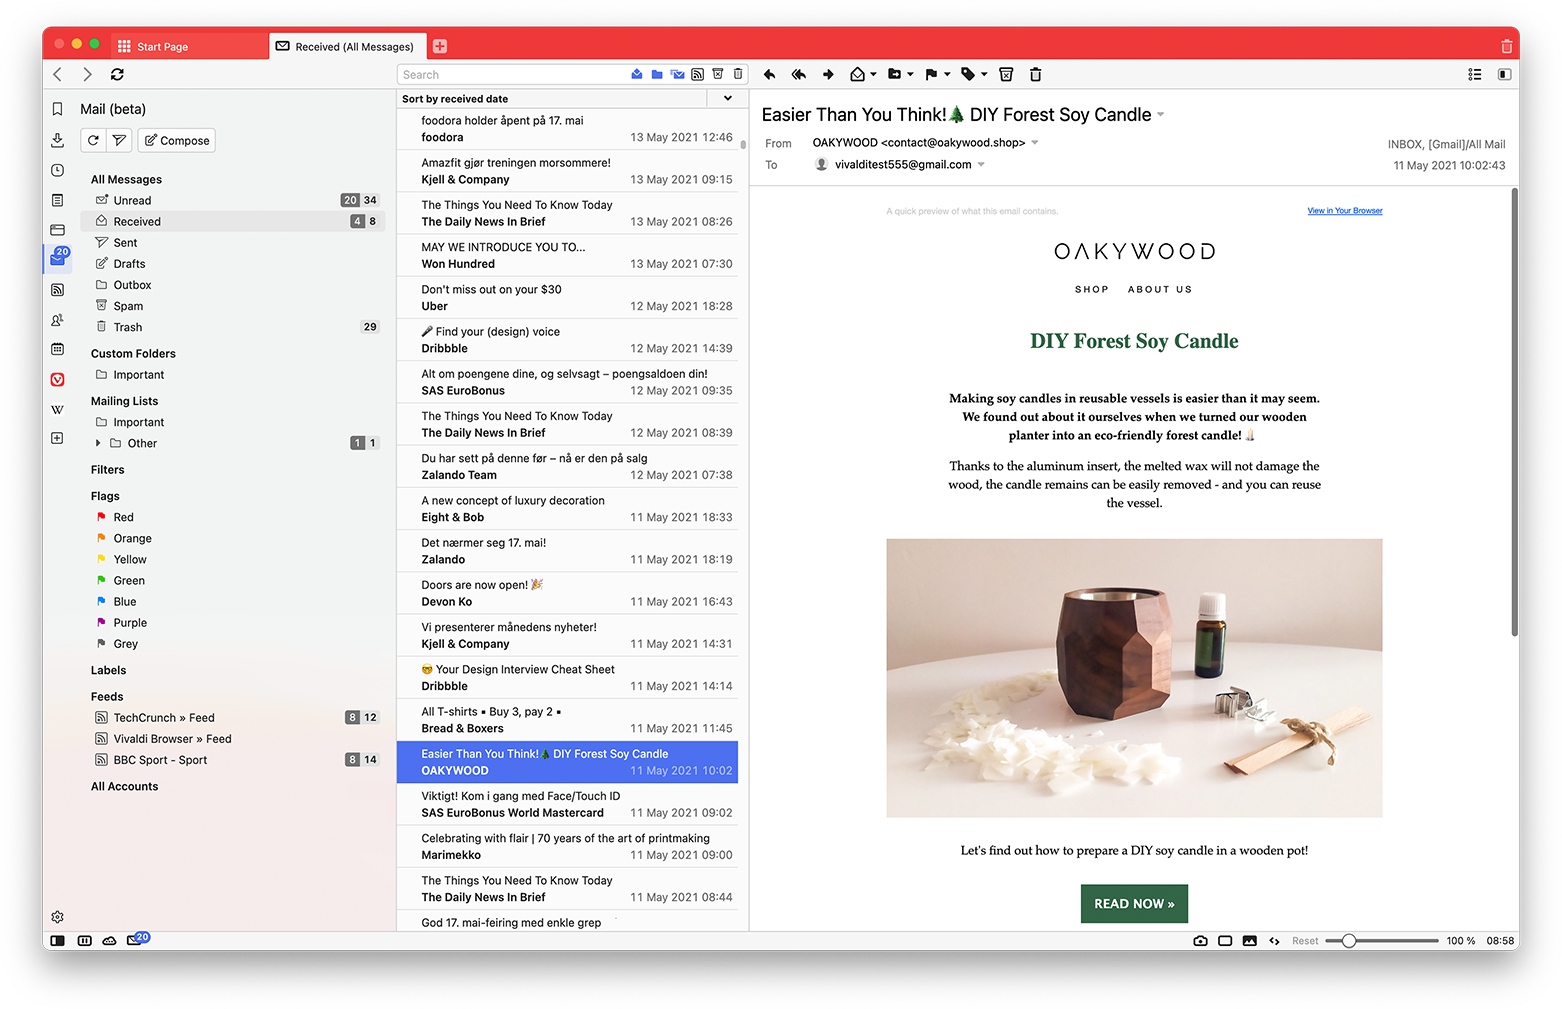 Vivaldi Mail, a full email client built into Vivaldi Browser, showing the default three-panel view when viewing the Mail Panel.